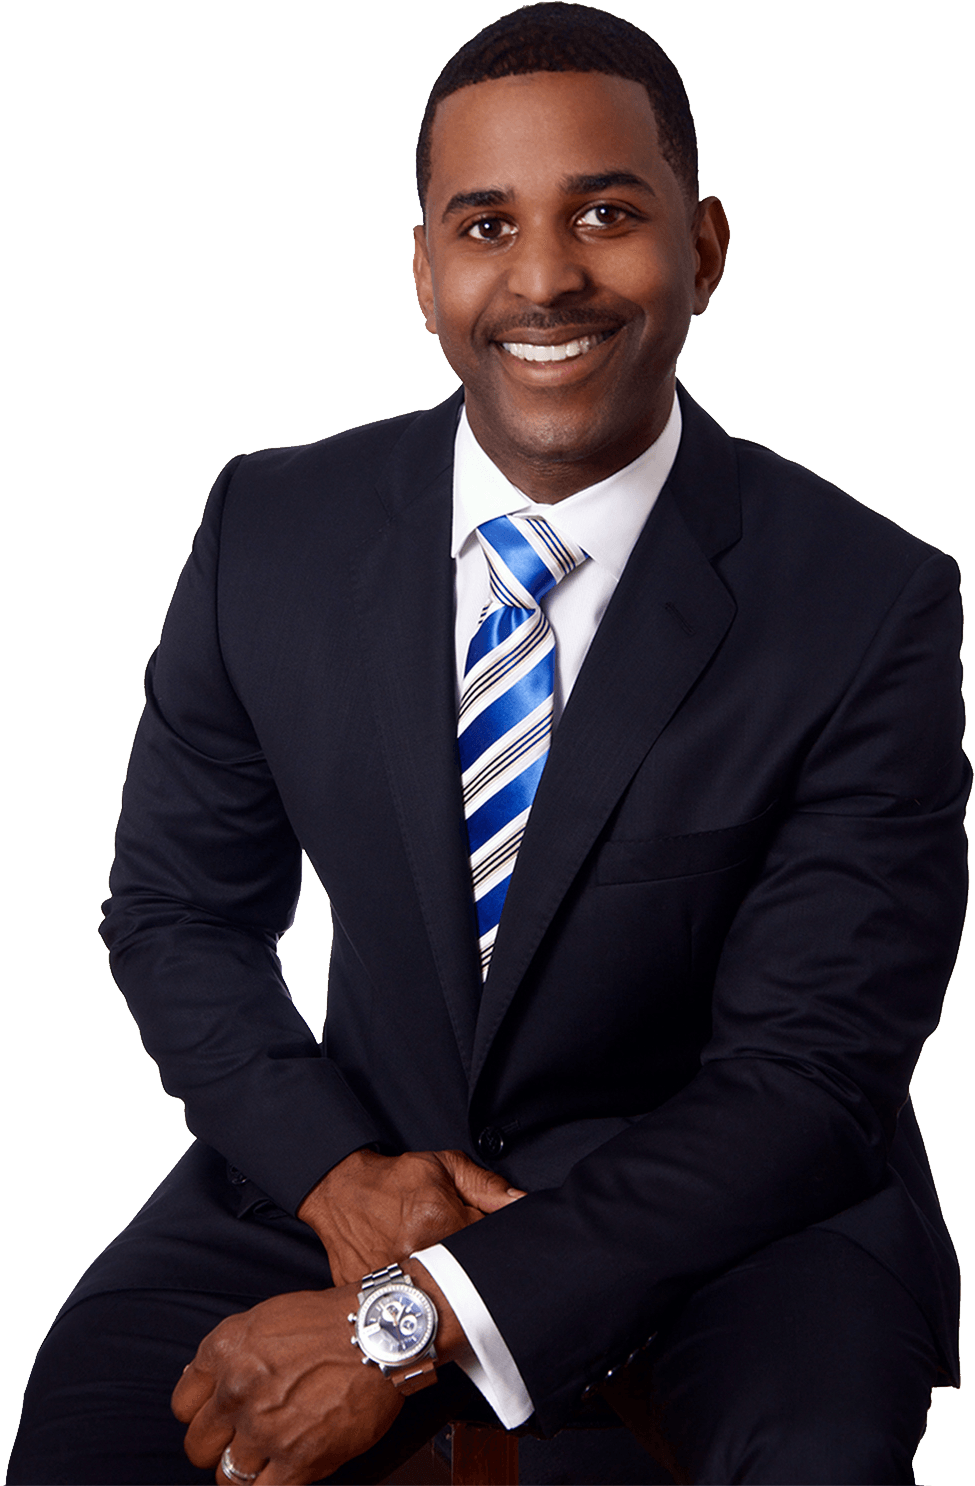 African american businessman png. Transparent images pluspng image